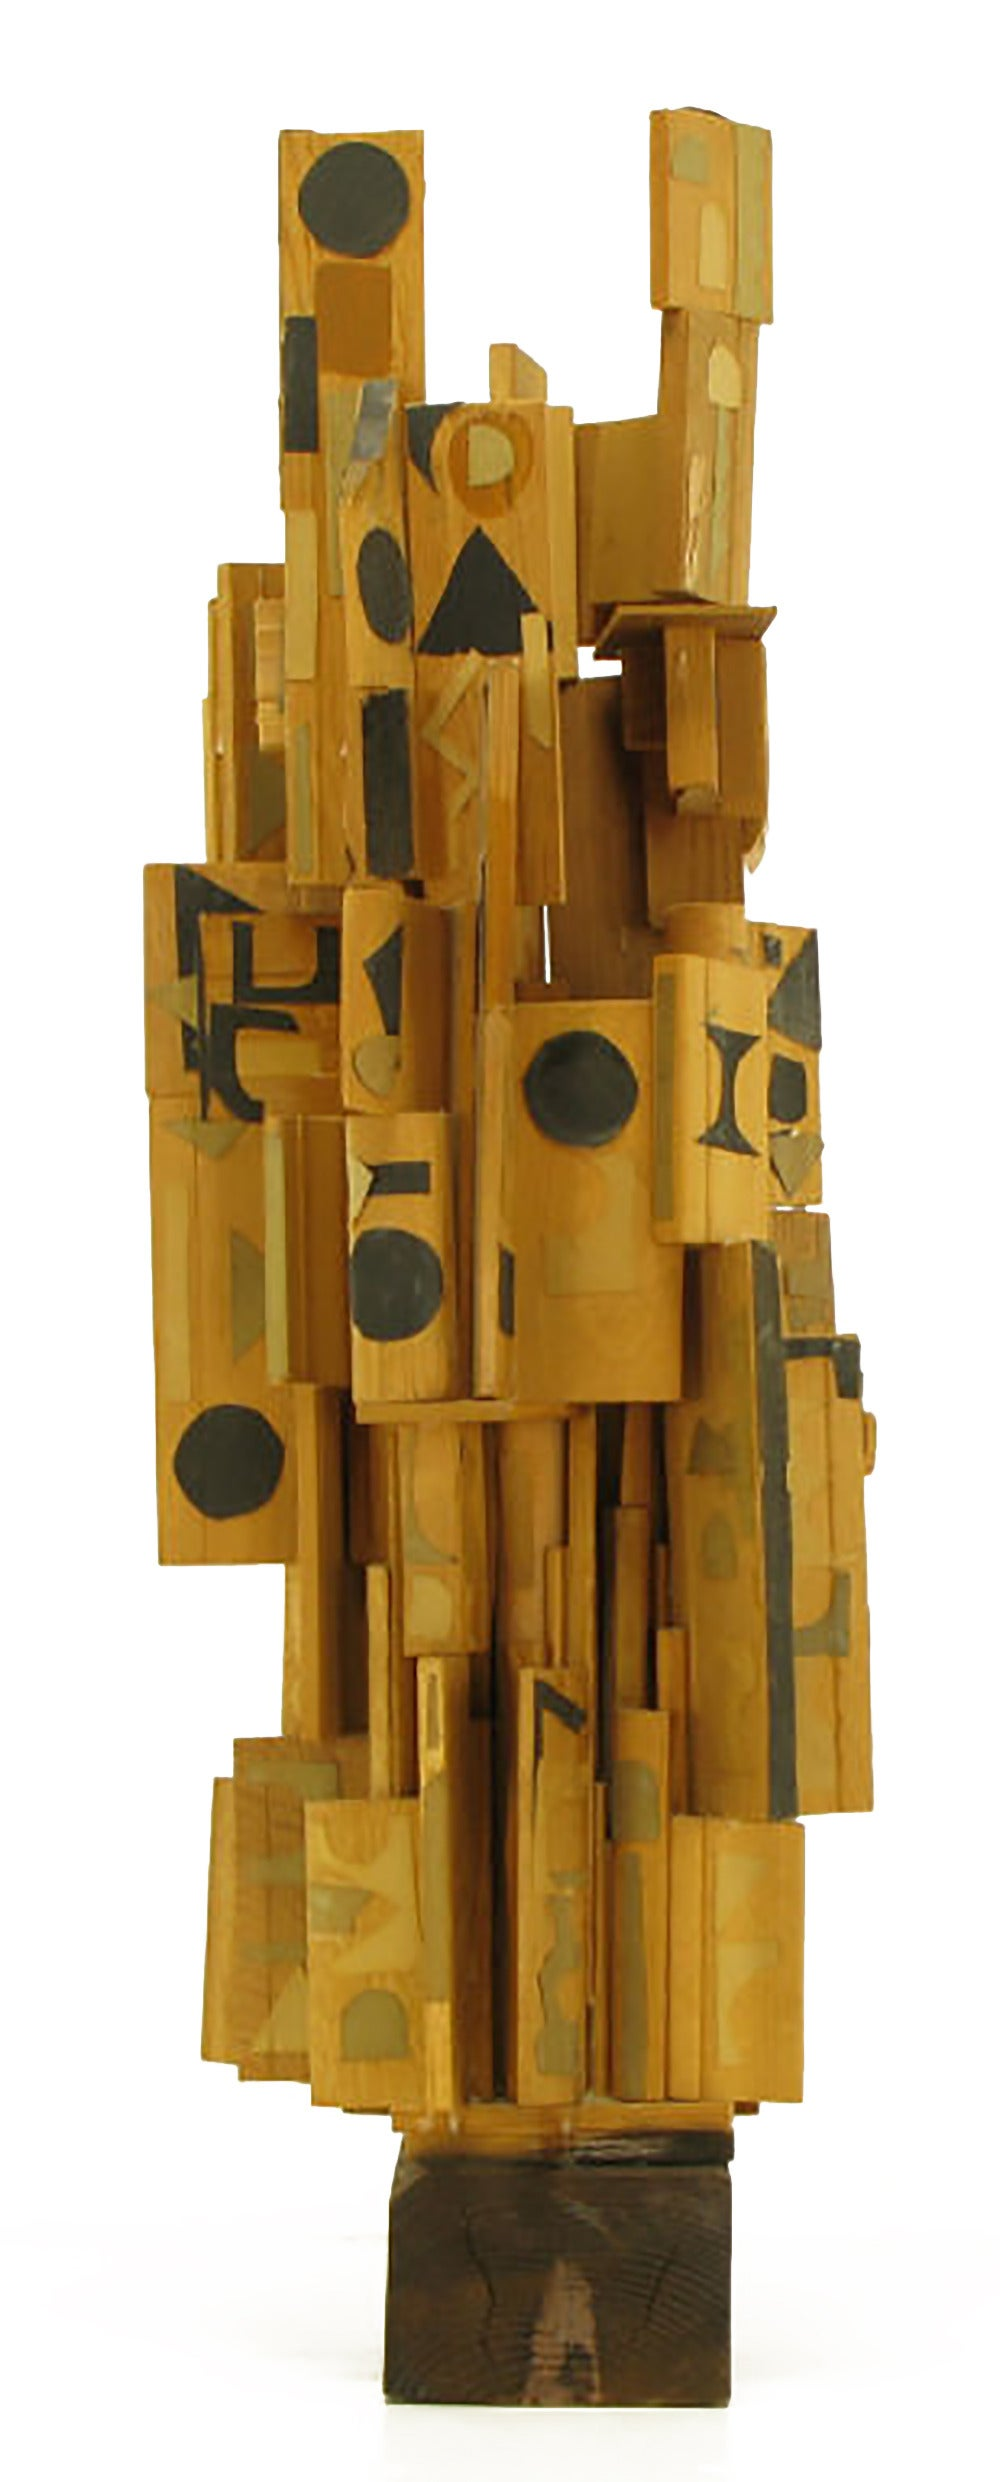 Folk Art Outsider Art Wood Sculpture with Geometric Appliques For Sale